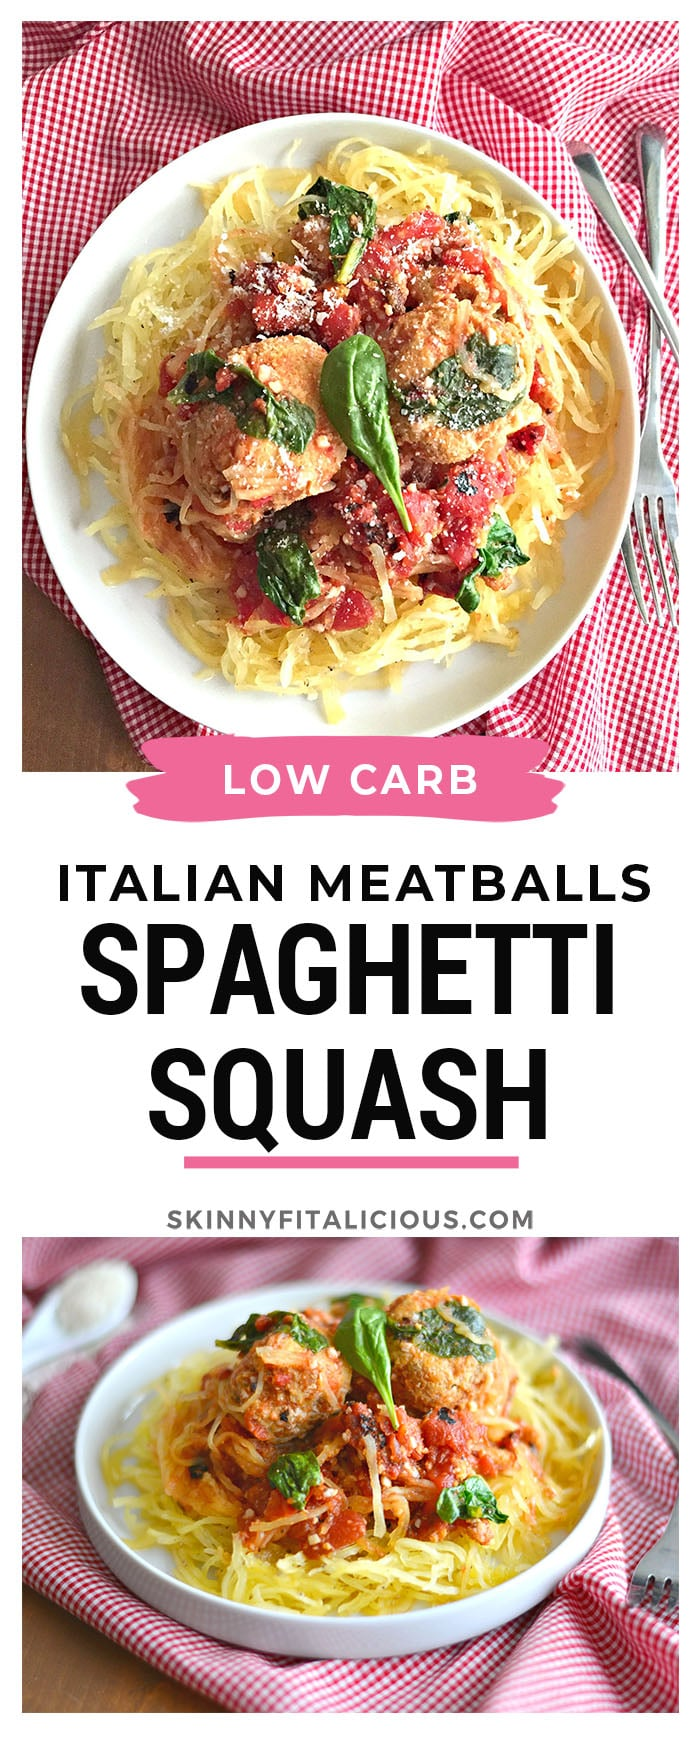 Turkey Veggie Meatballs With Spaghetti Squash packedwith carrots, zucchini and onion and paired with spaghetti squash pasta making itpaleo and gluten-free. Ahealthier and lighteralternative to pasta! Paleo + Gluten Free + Low Calorie